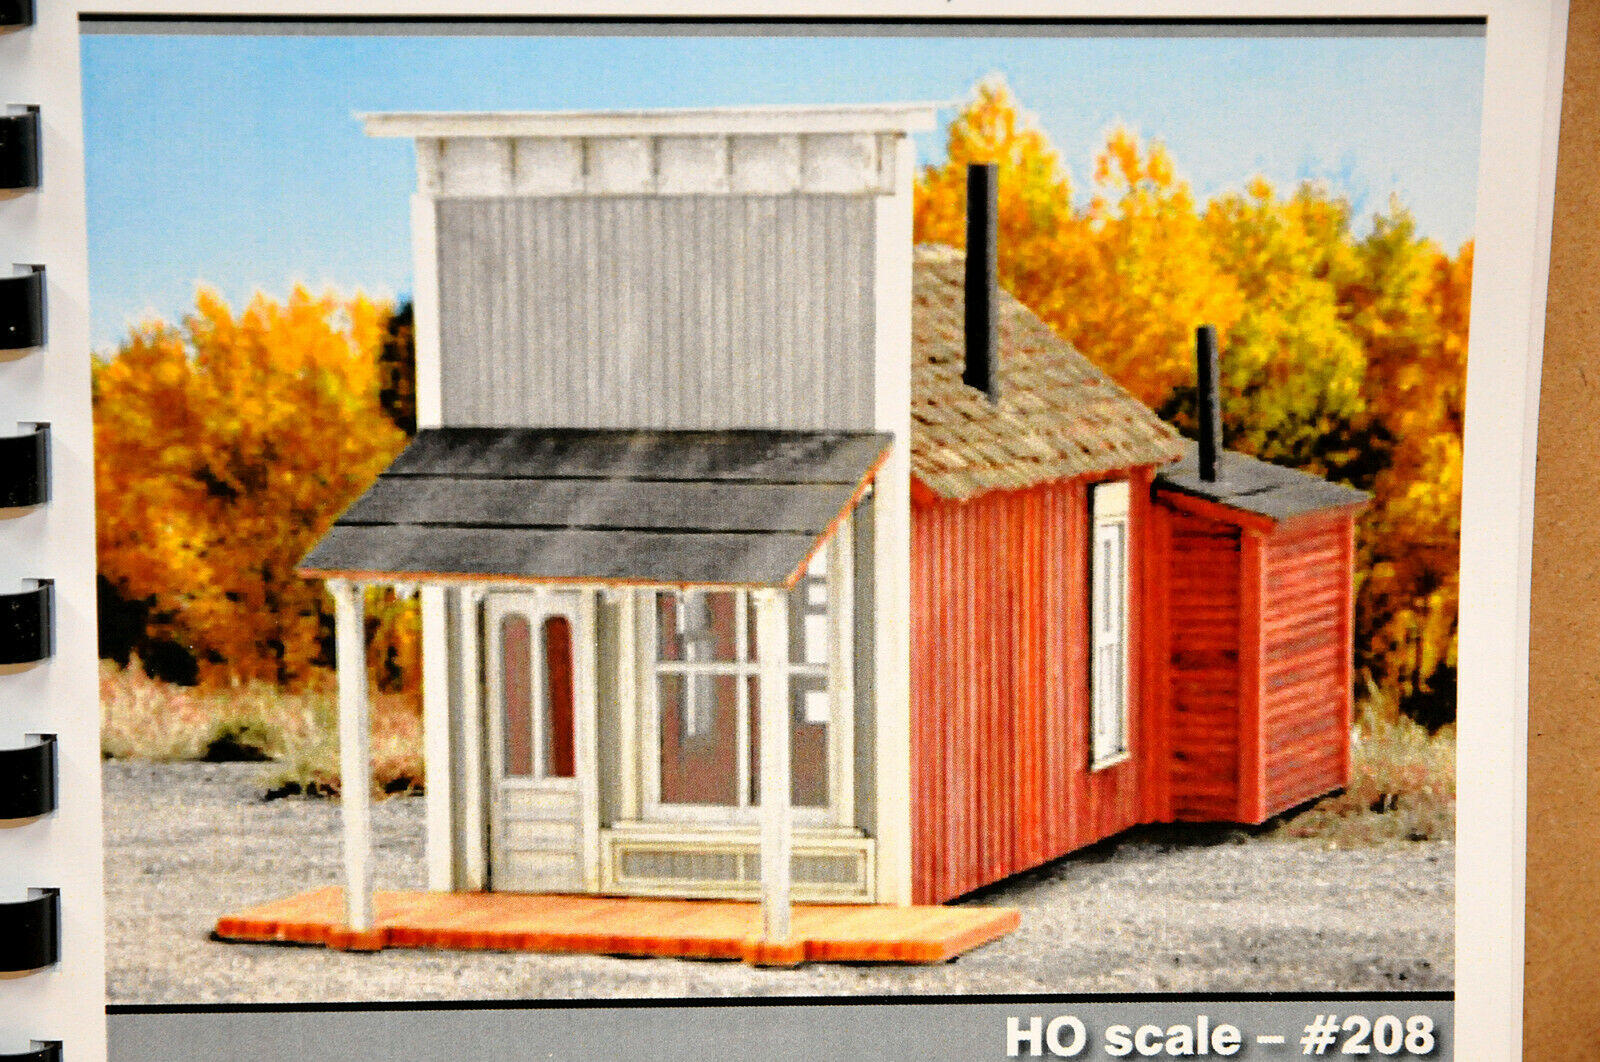 HO Wild West Scale Model Builders Bakery Kit NEW or any business